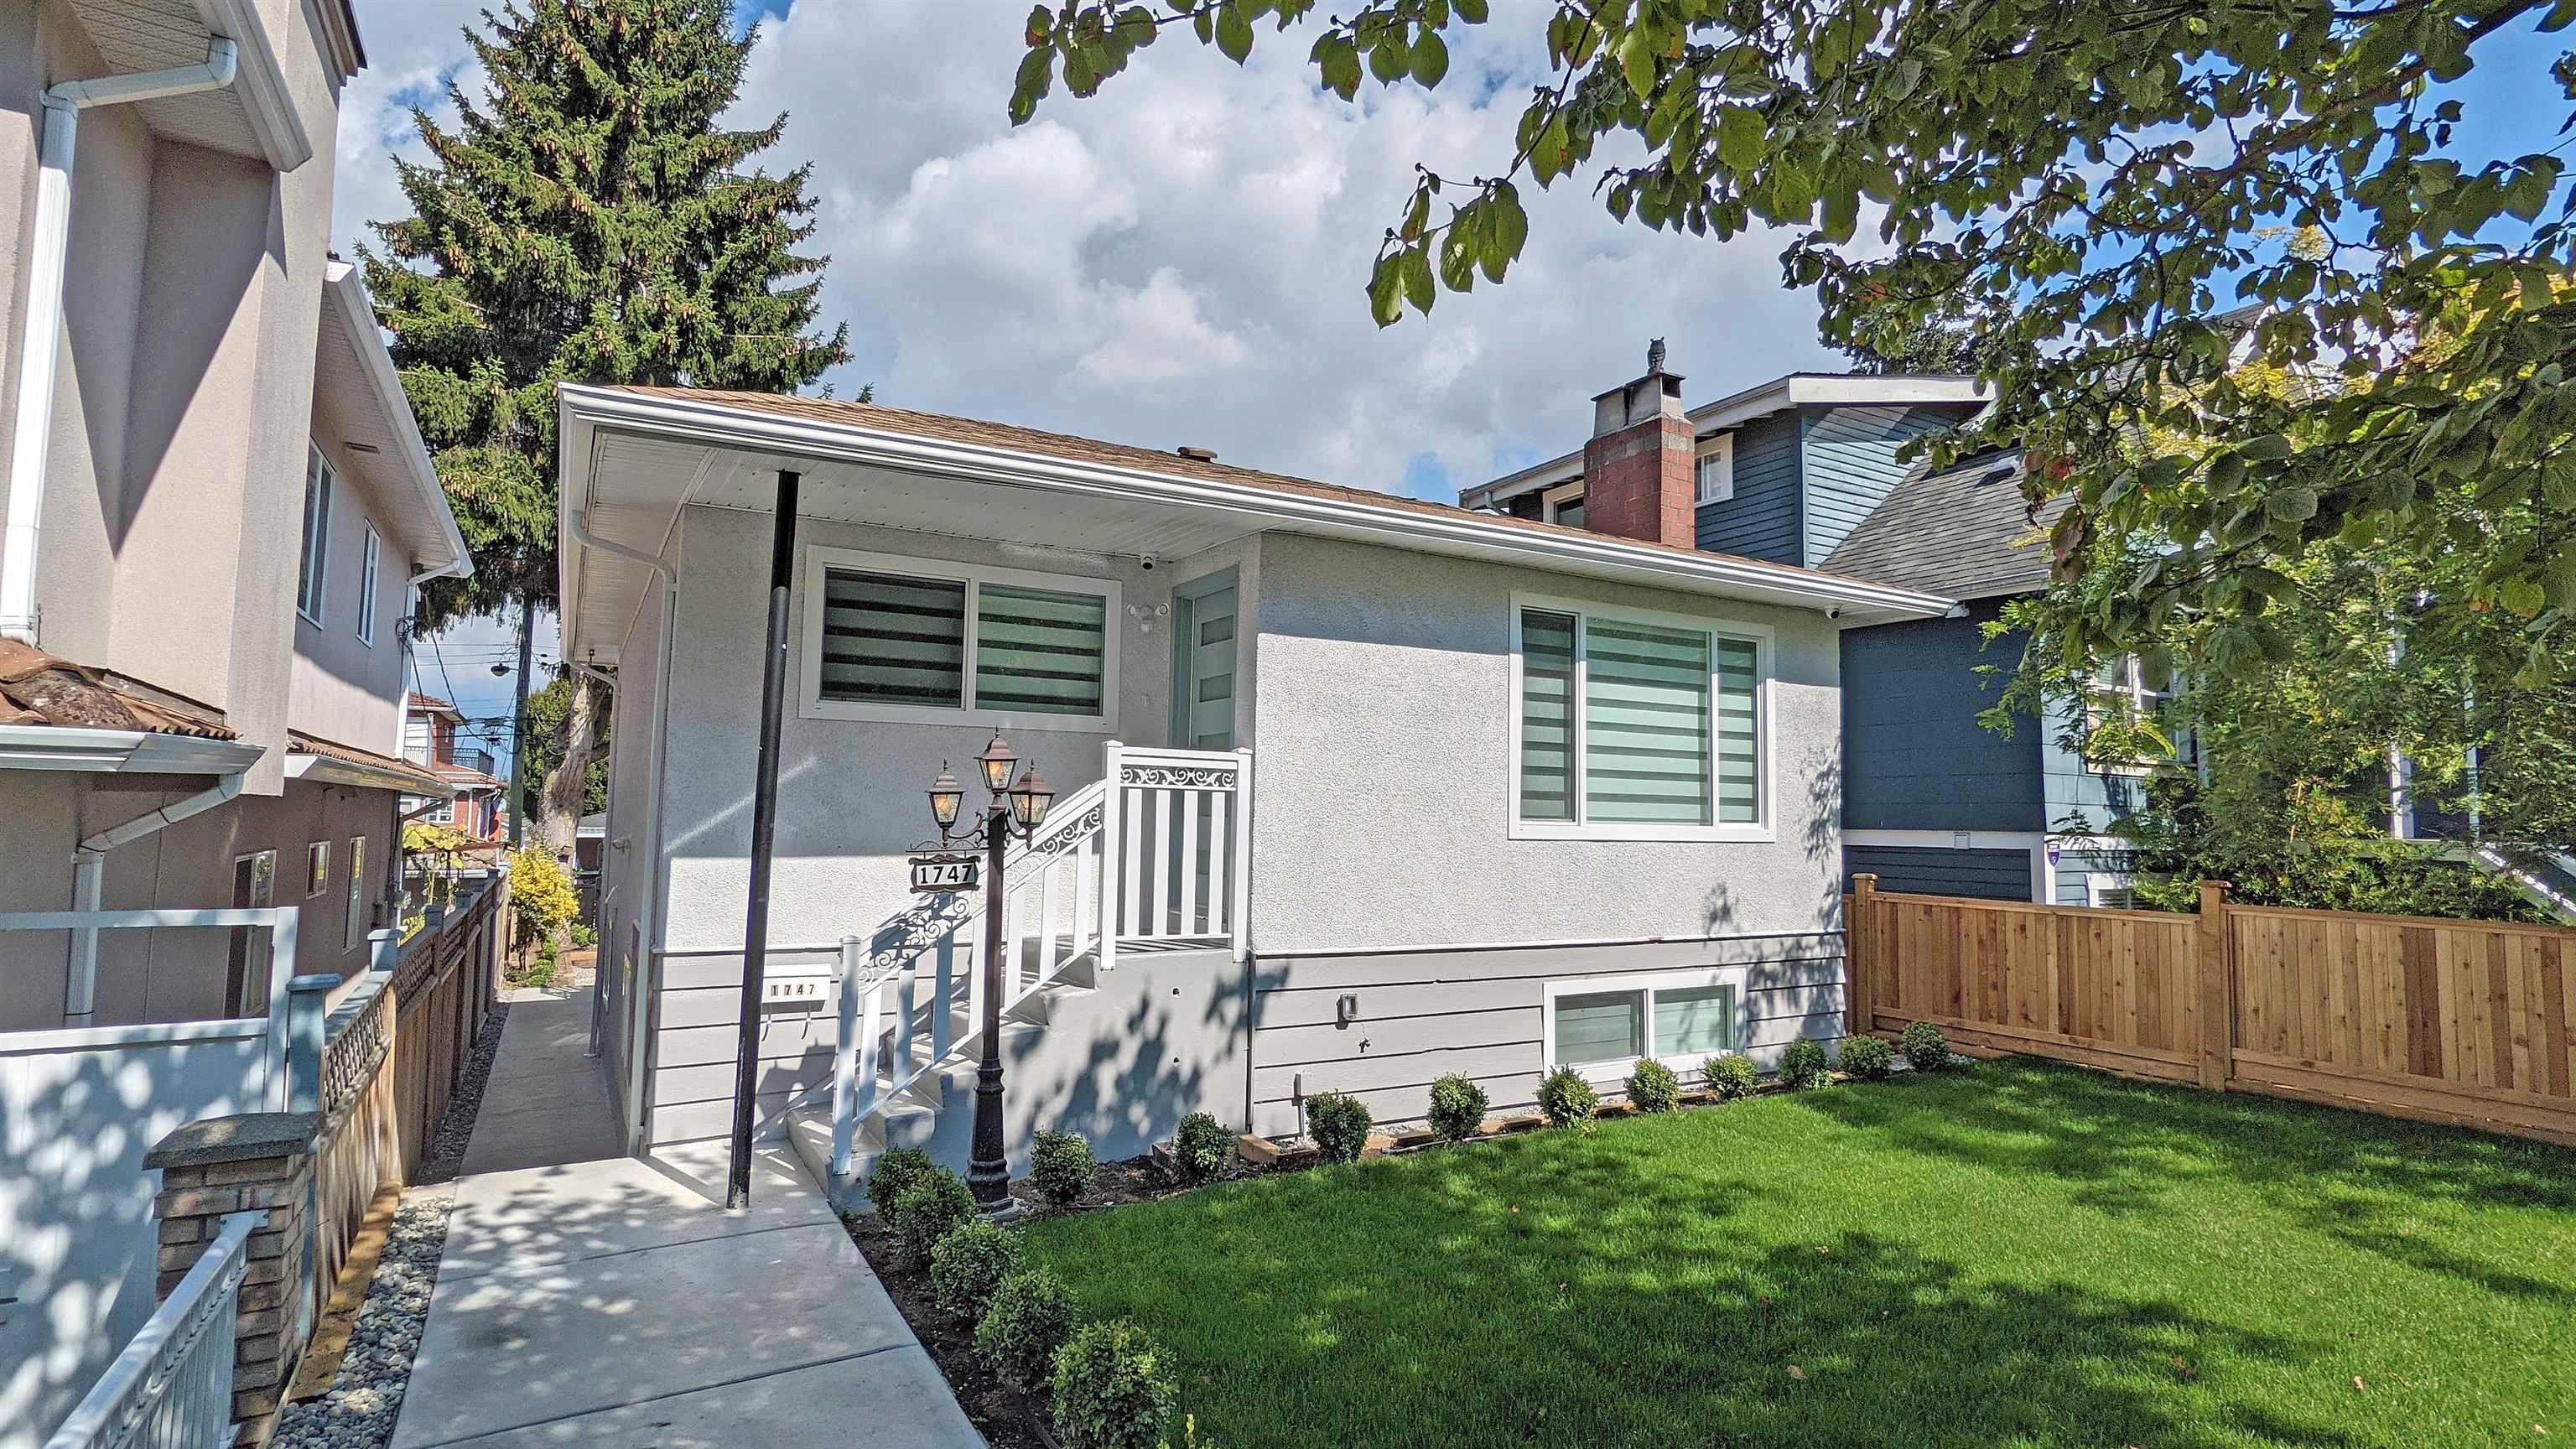 Main Photo: 1747 E 34TH Avenue in Vancouver: Victoria VE House for sale (Vancouver East)  : MLS®# R2616665